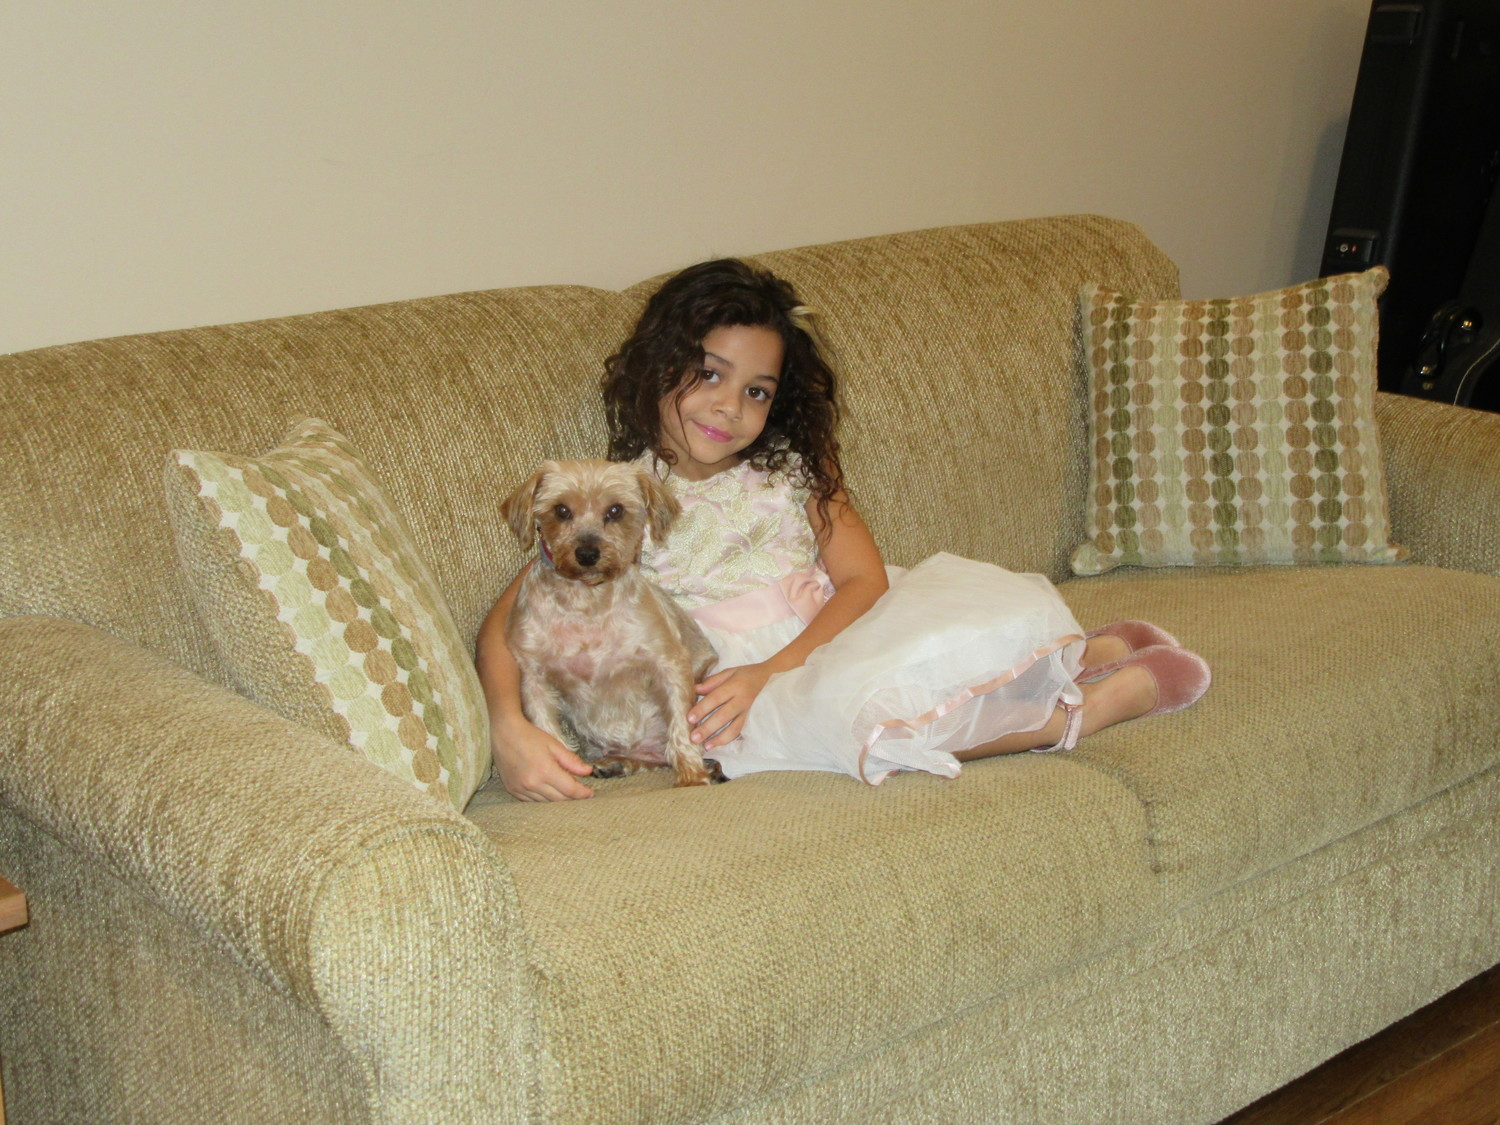 Sondra Toscano said her daughter, Lydia, and her furry best friend Venus are kindred spirits.